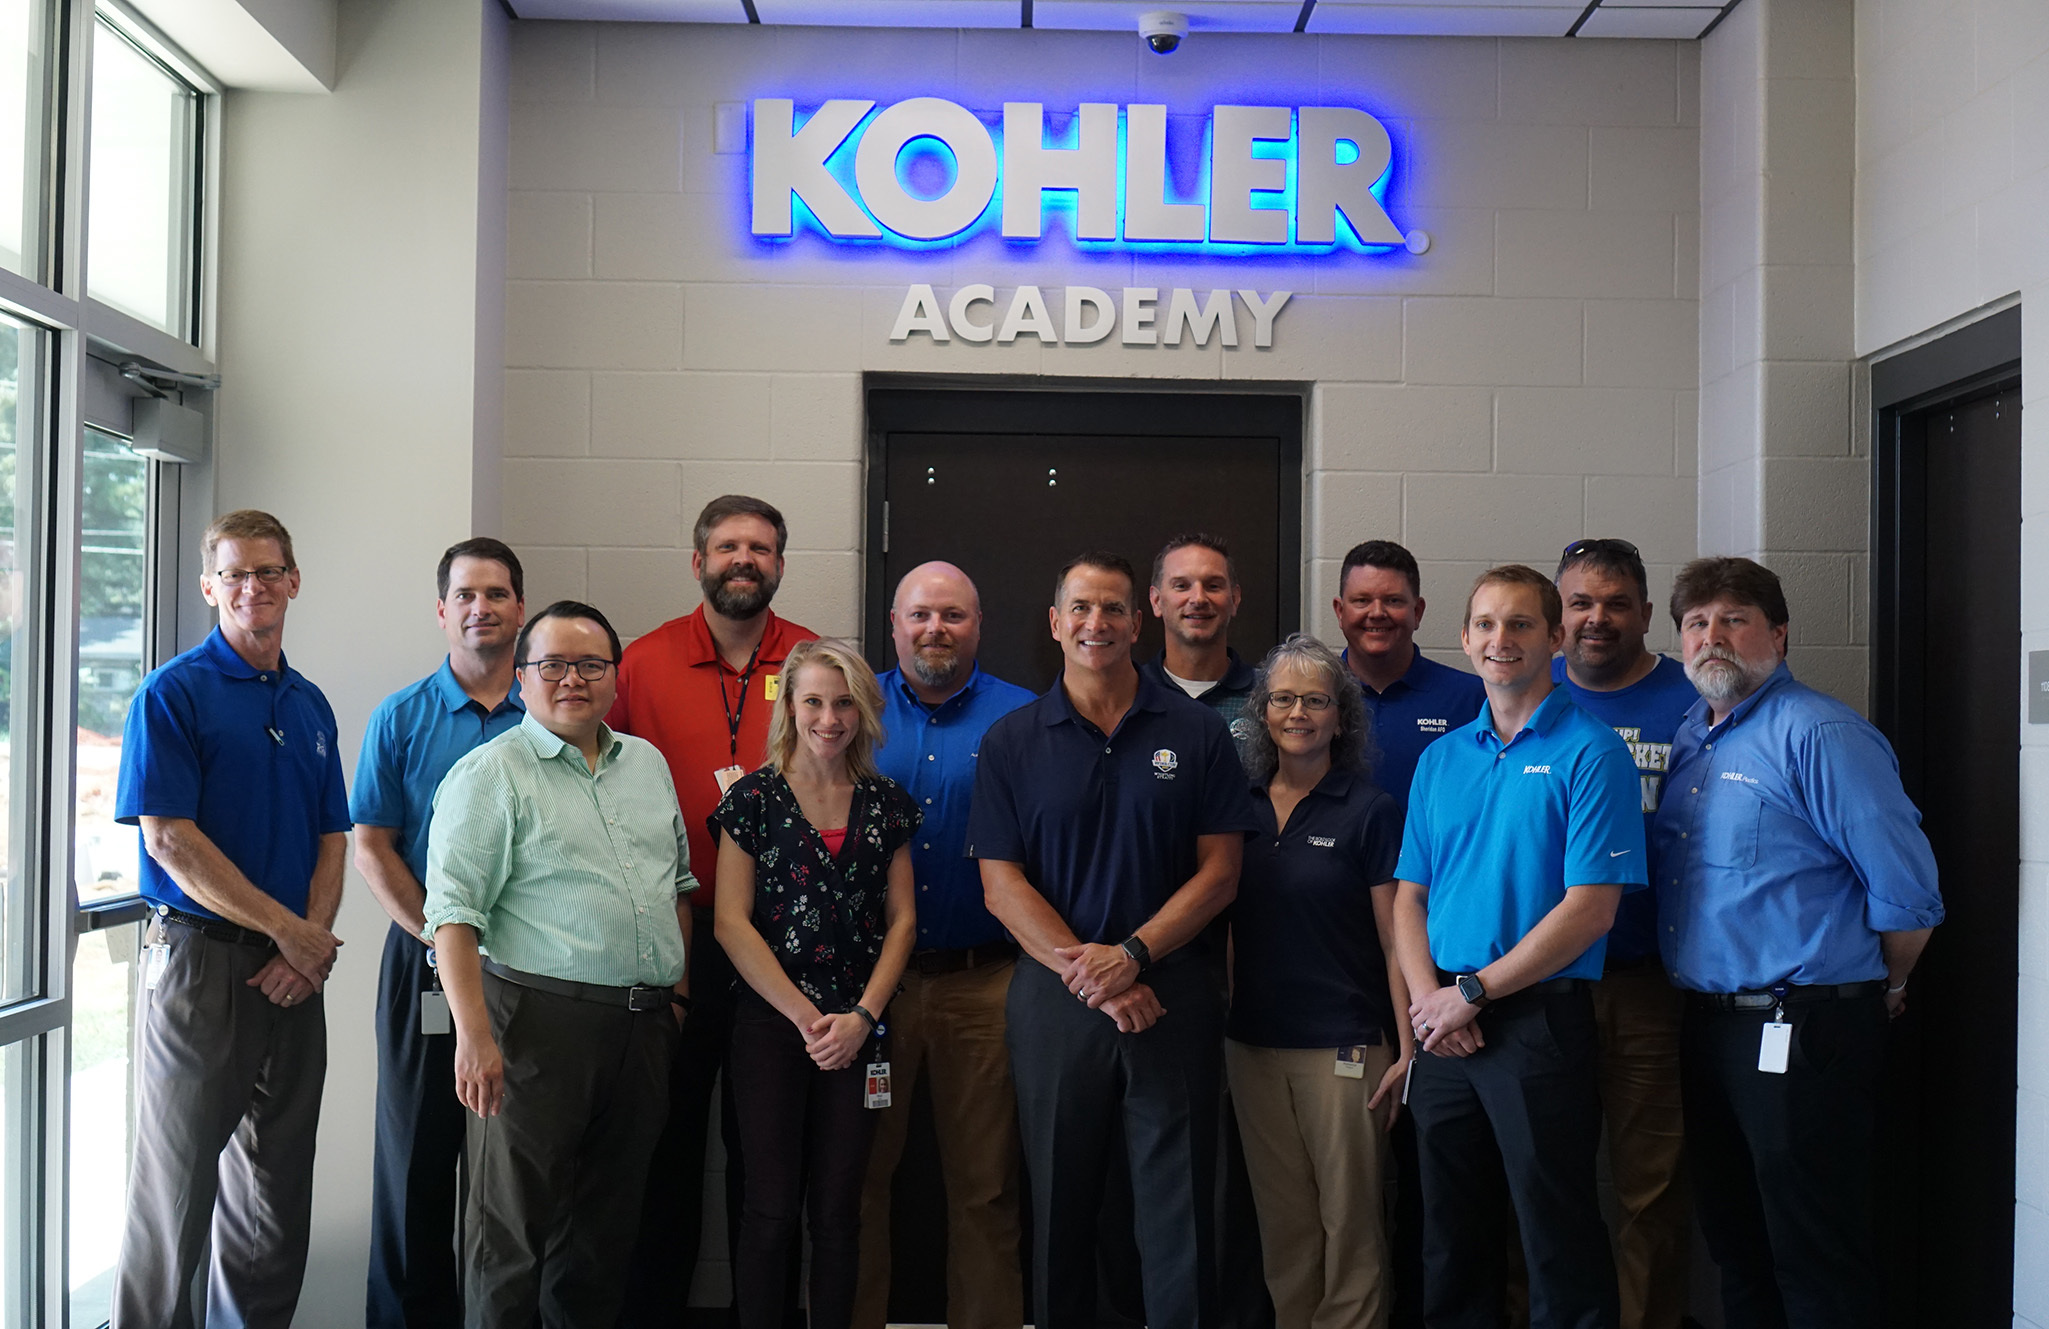 Kohler Academy group photo